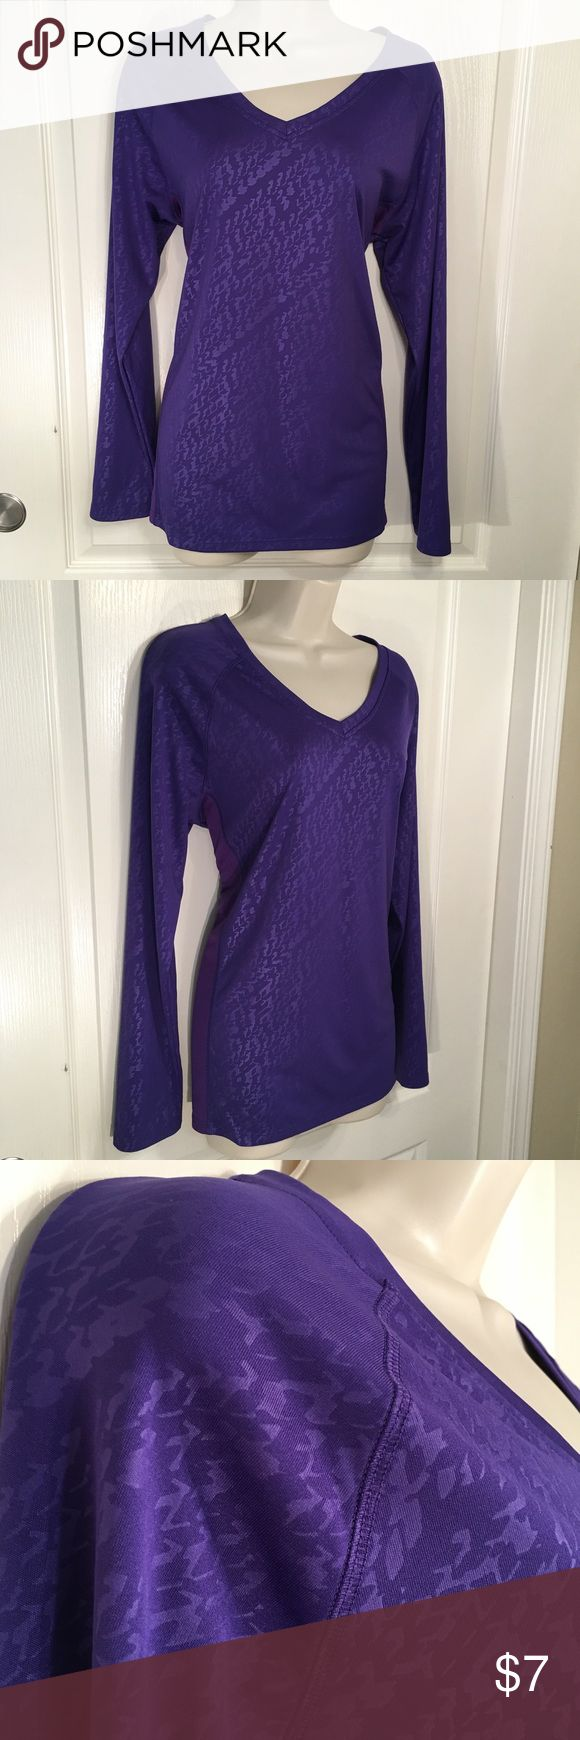 "C9 by Champion Athletic Long Sleeve Gently used, no flaws.  Measurements are Length: 27.5"" Bust: 42"" Sleeve Length: 24.5"" All measurements are taken with the article of clothing lying flat and relaxed. C9 by Champion Tops Tees - Long Sleeve"